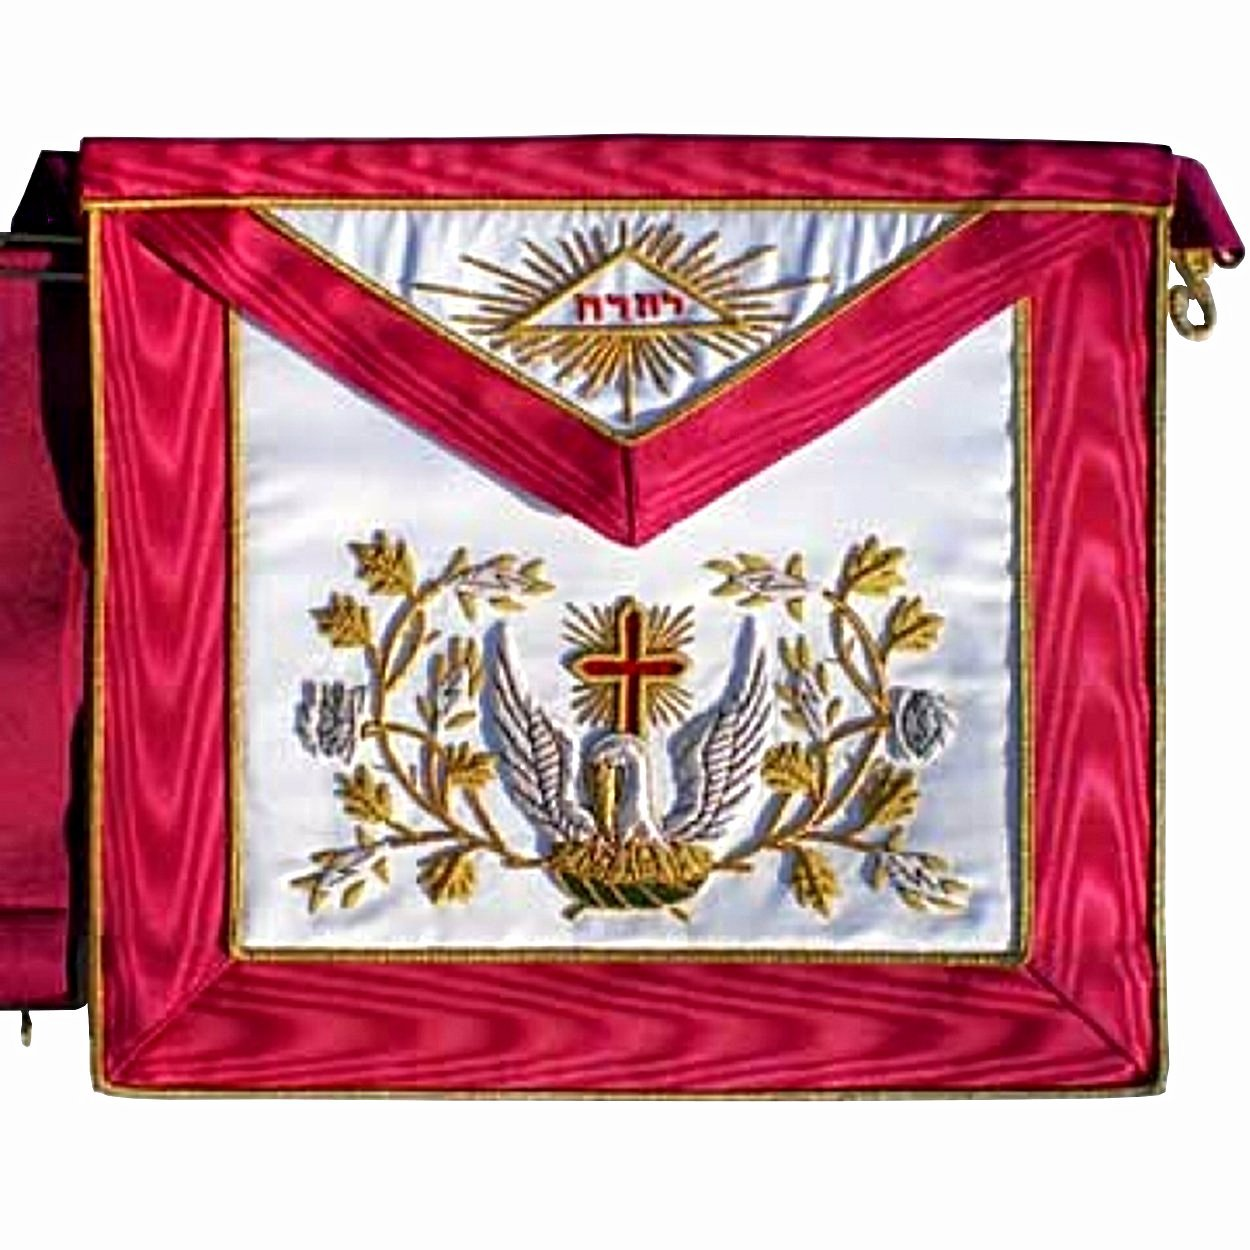 Masonic Scottish Rite AASR Silk cardinal red apron 18th degree Hand Embroidered - Bricks Masons